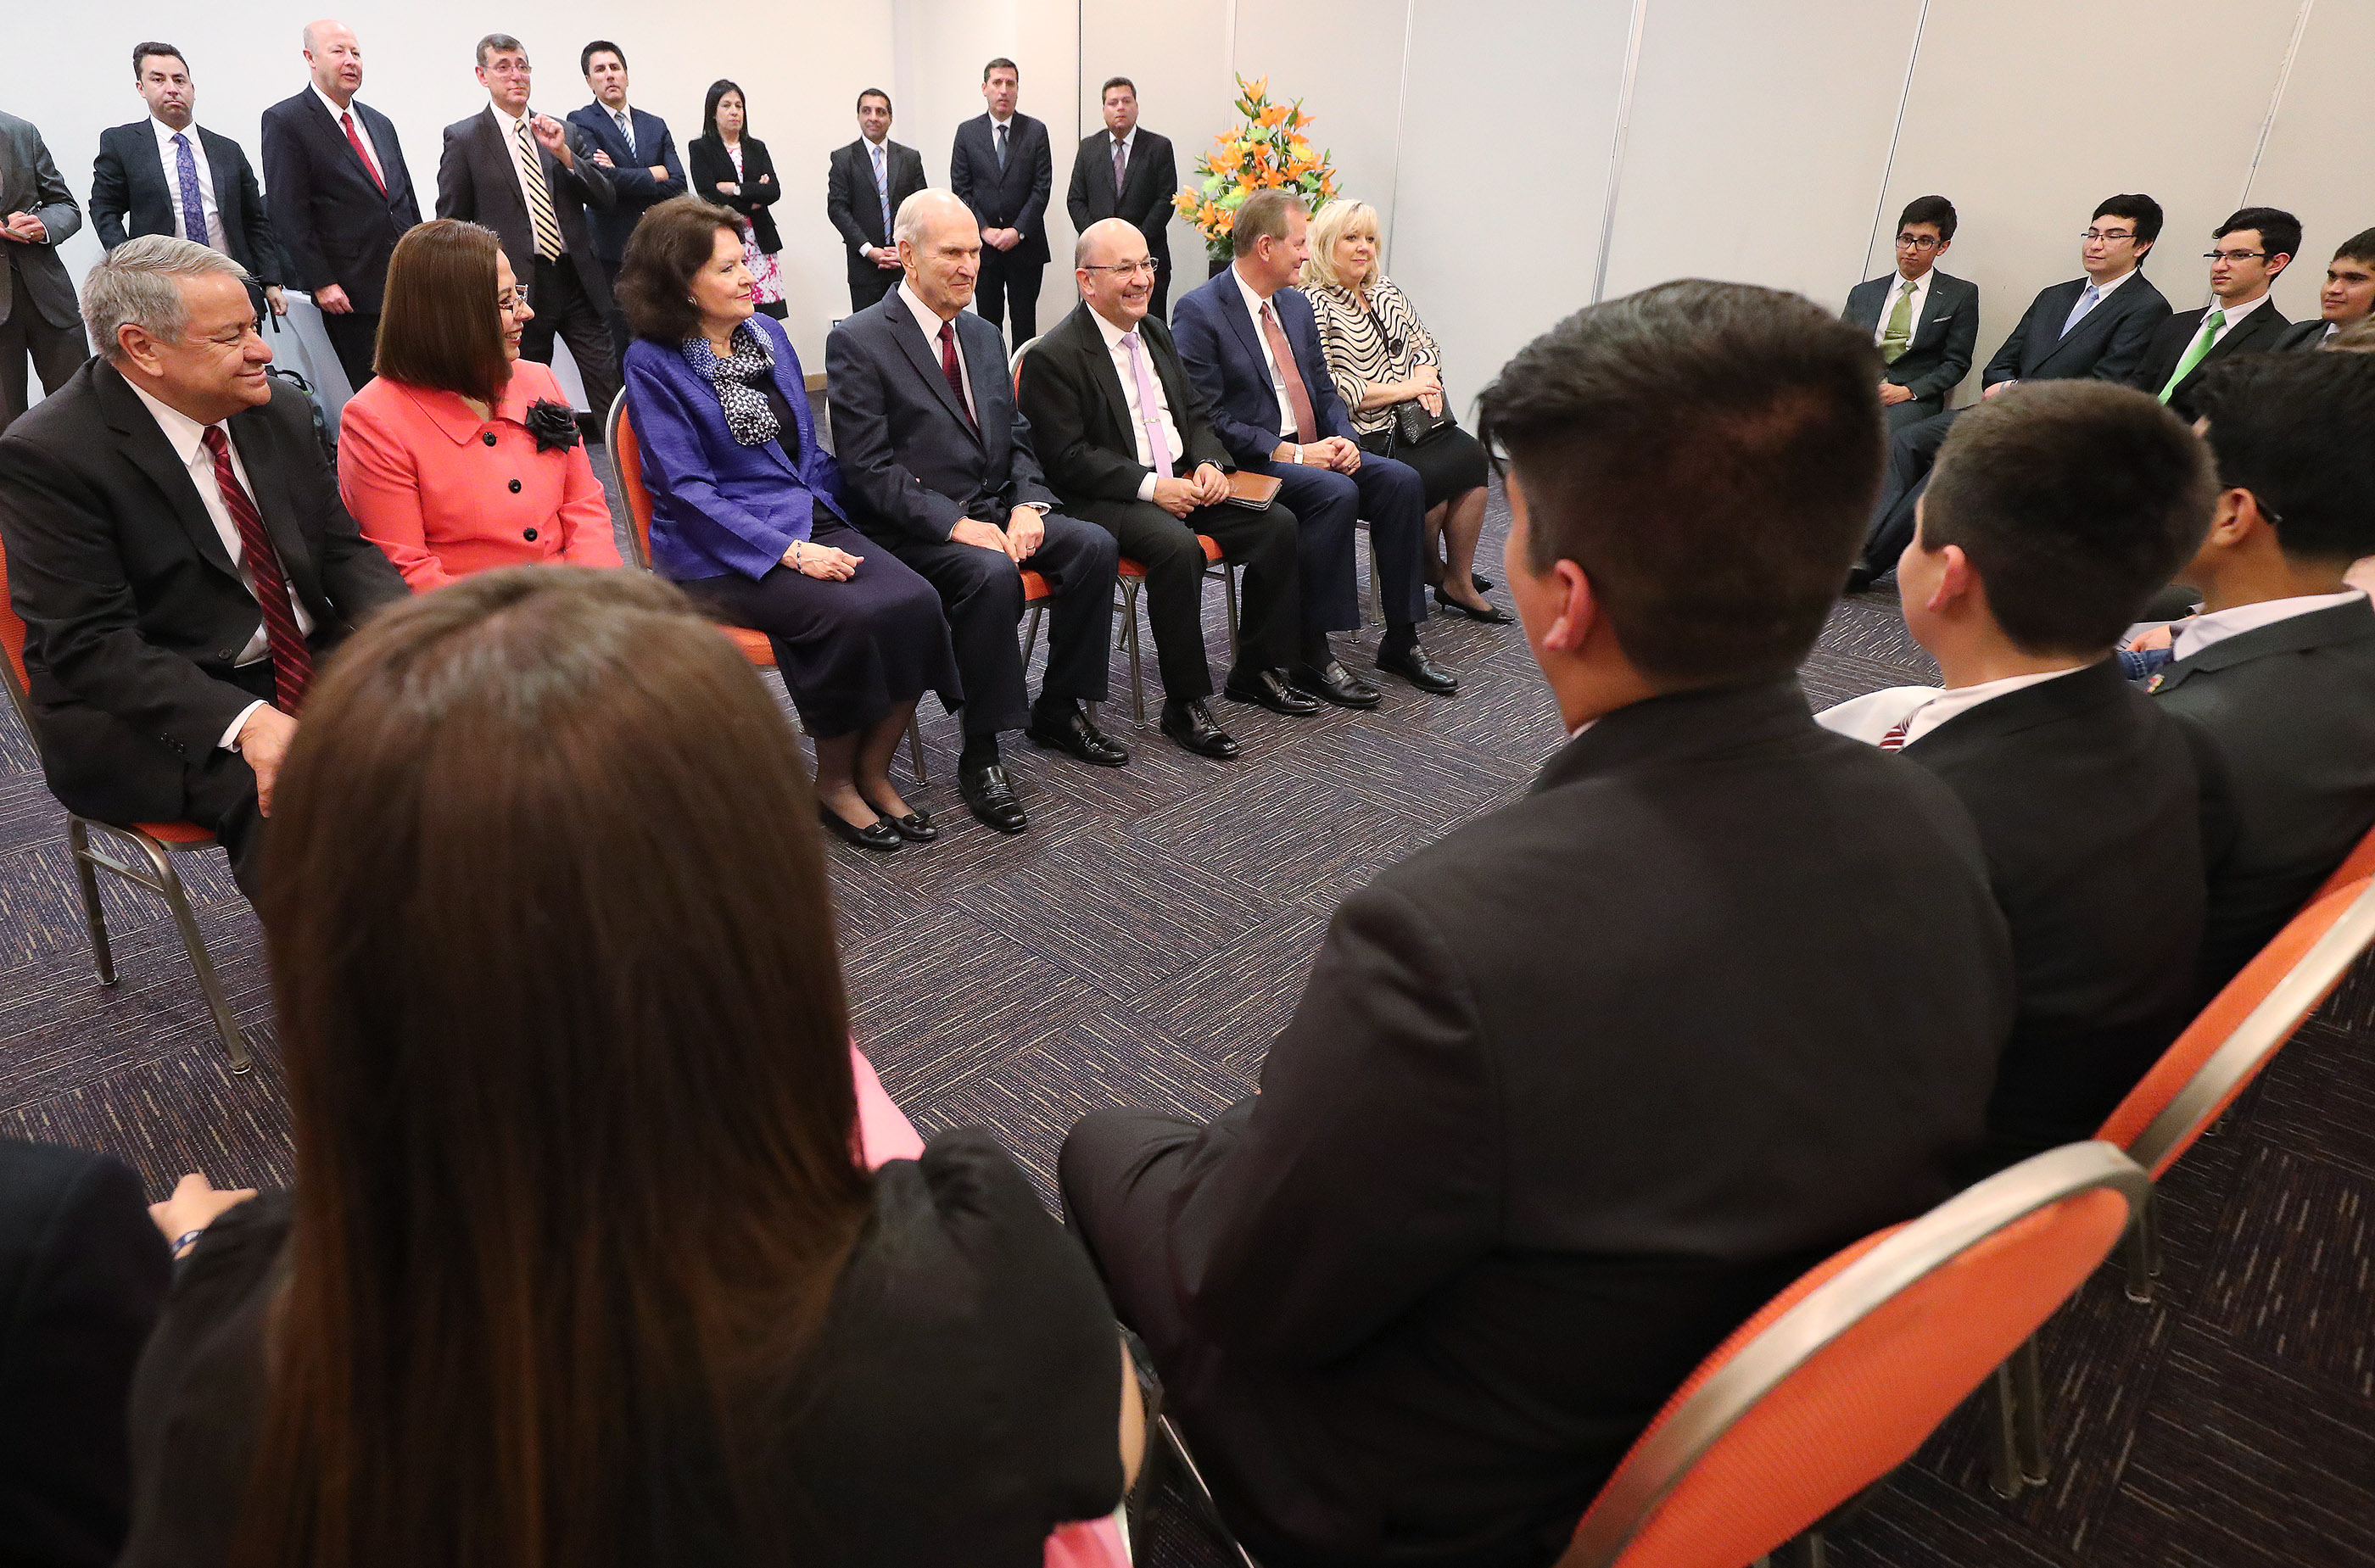 President Russell M. Nelson of The Church of Jesus Christ of Latter-day Saints and his wife, Sister Wendy Nelson, meet with youth in Concepcion, Chile, on Saturday, Oct. 27, 2018.